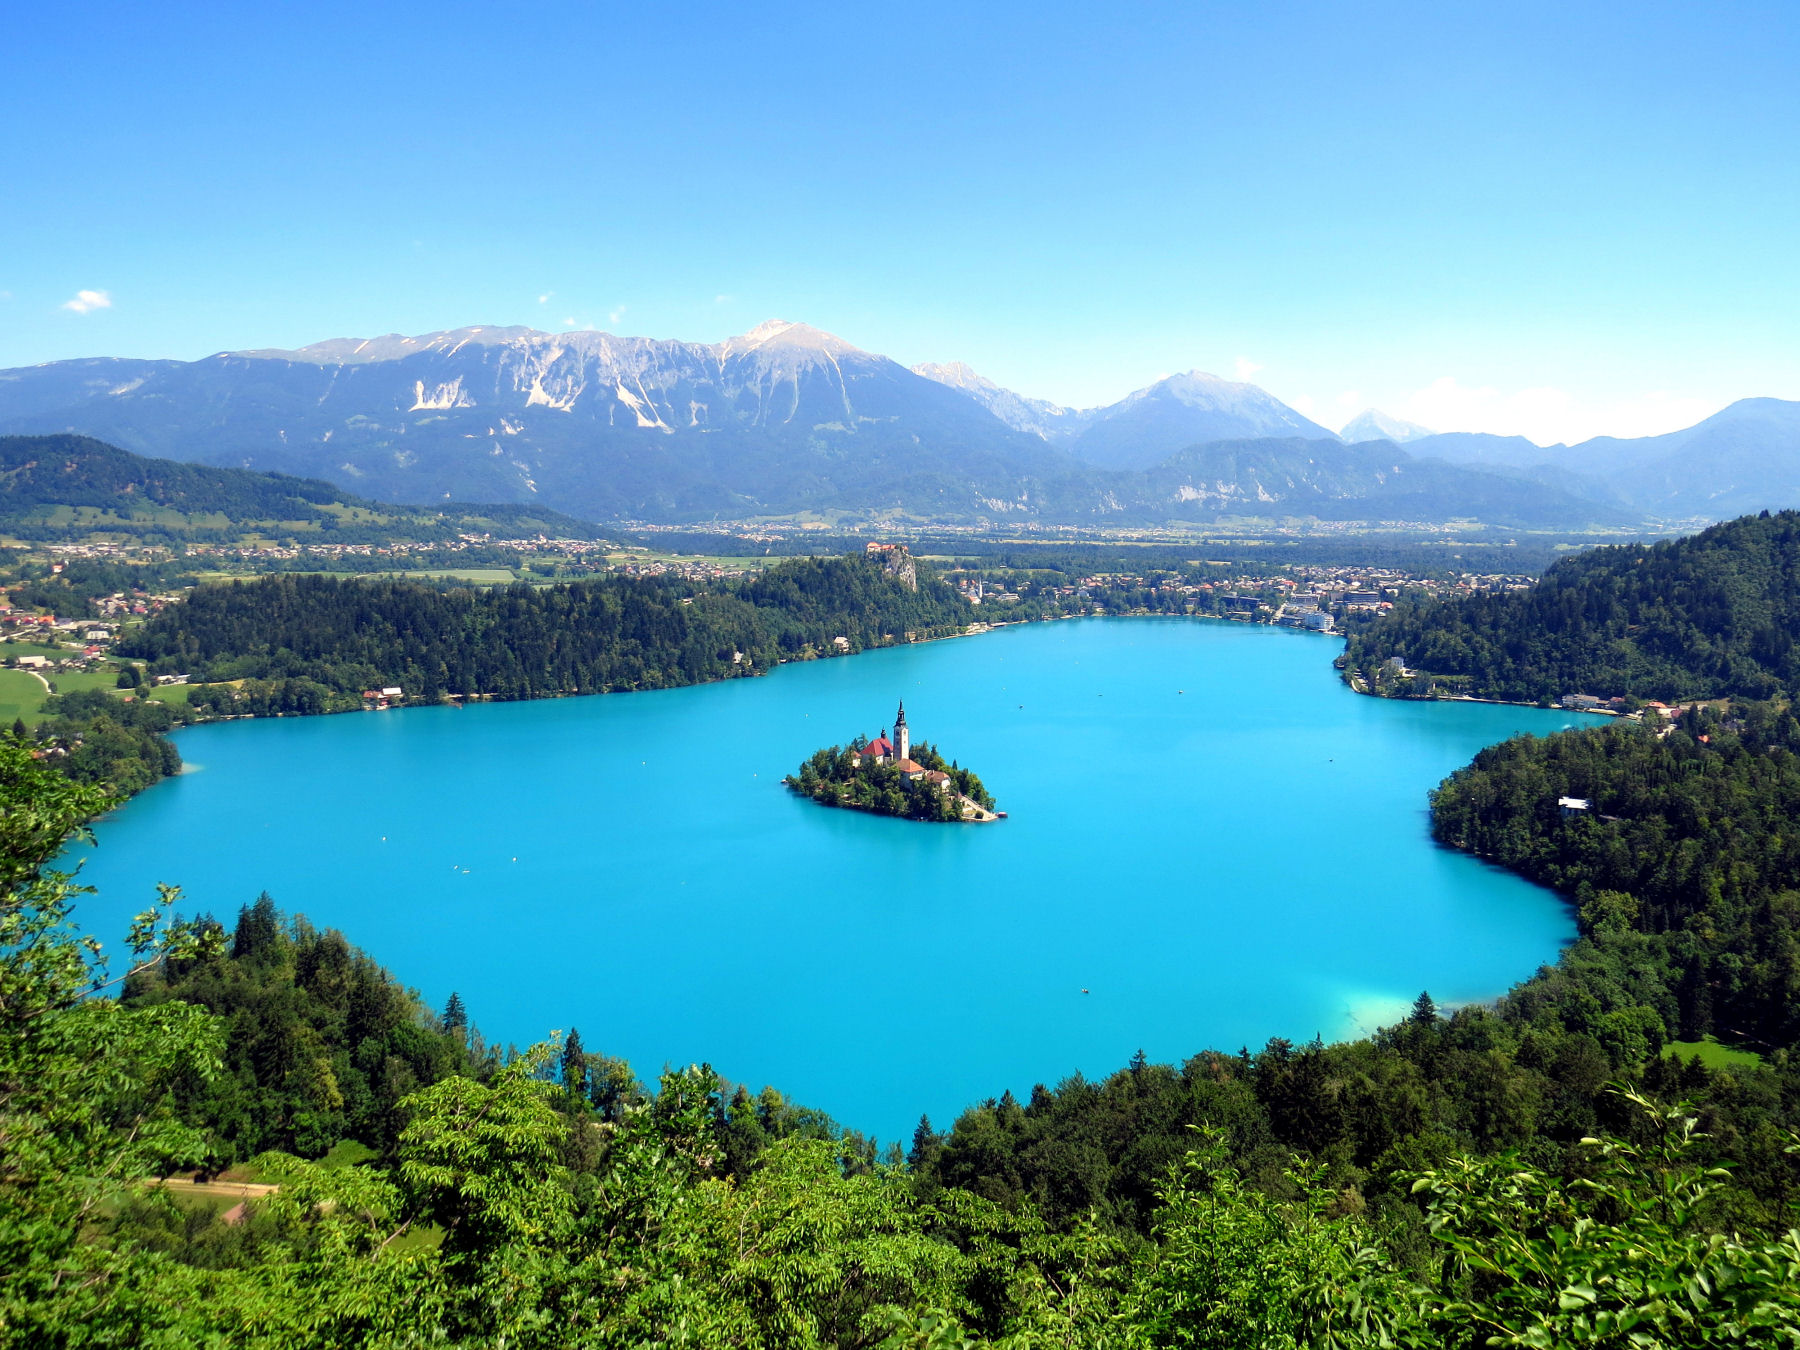 With immense natural beauty, Bled, together with its surroundings, ranks among the most beautiful alpine resorts